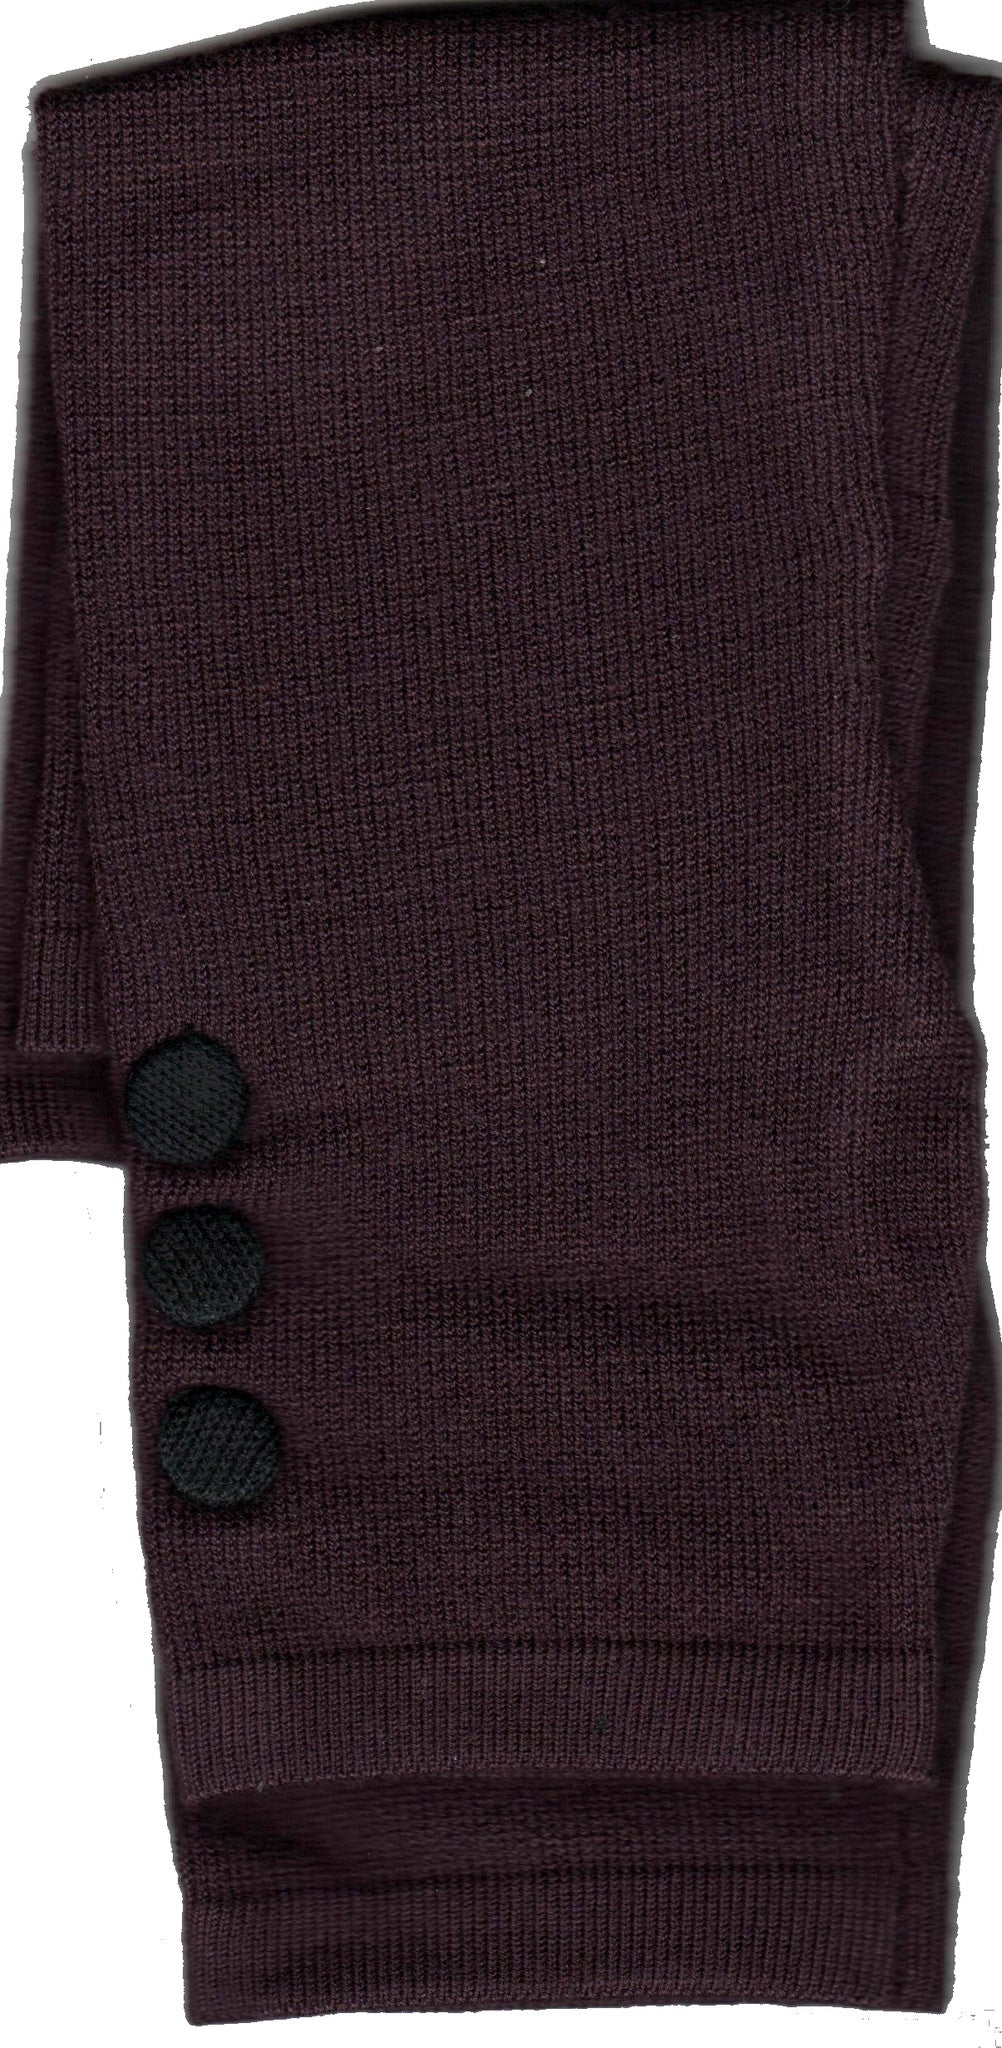 Zazou Button Fingerless Glove with Black Button Embellishment